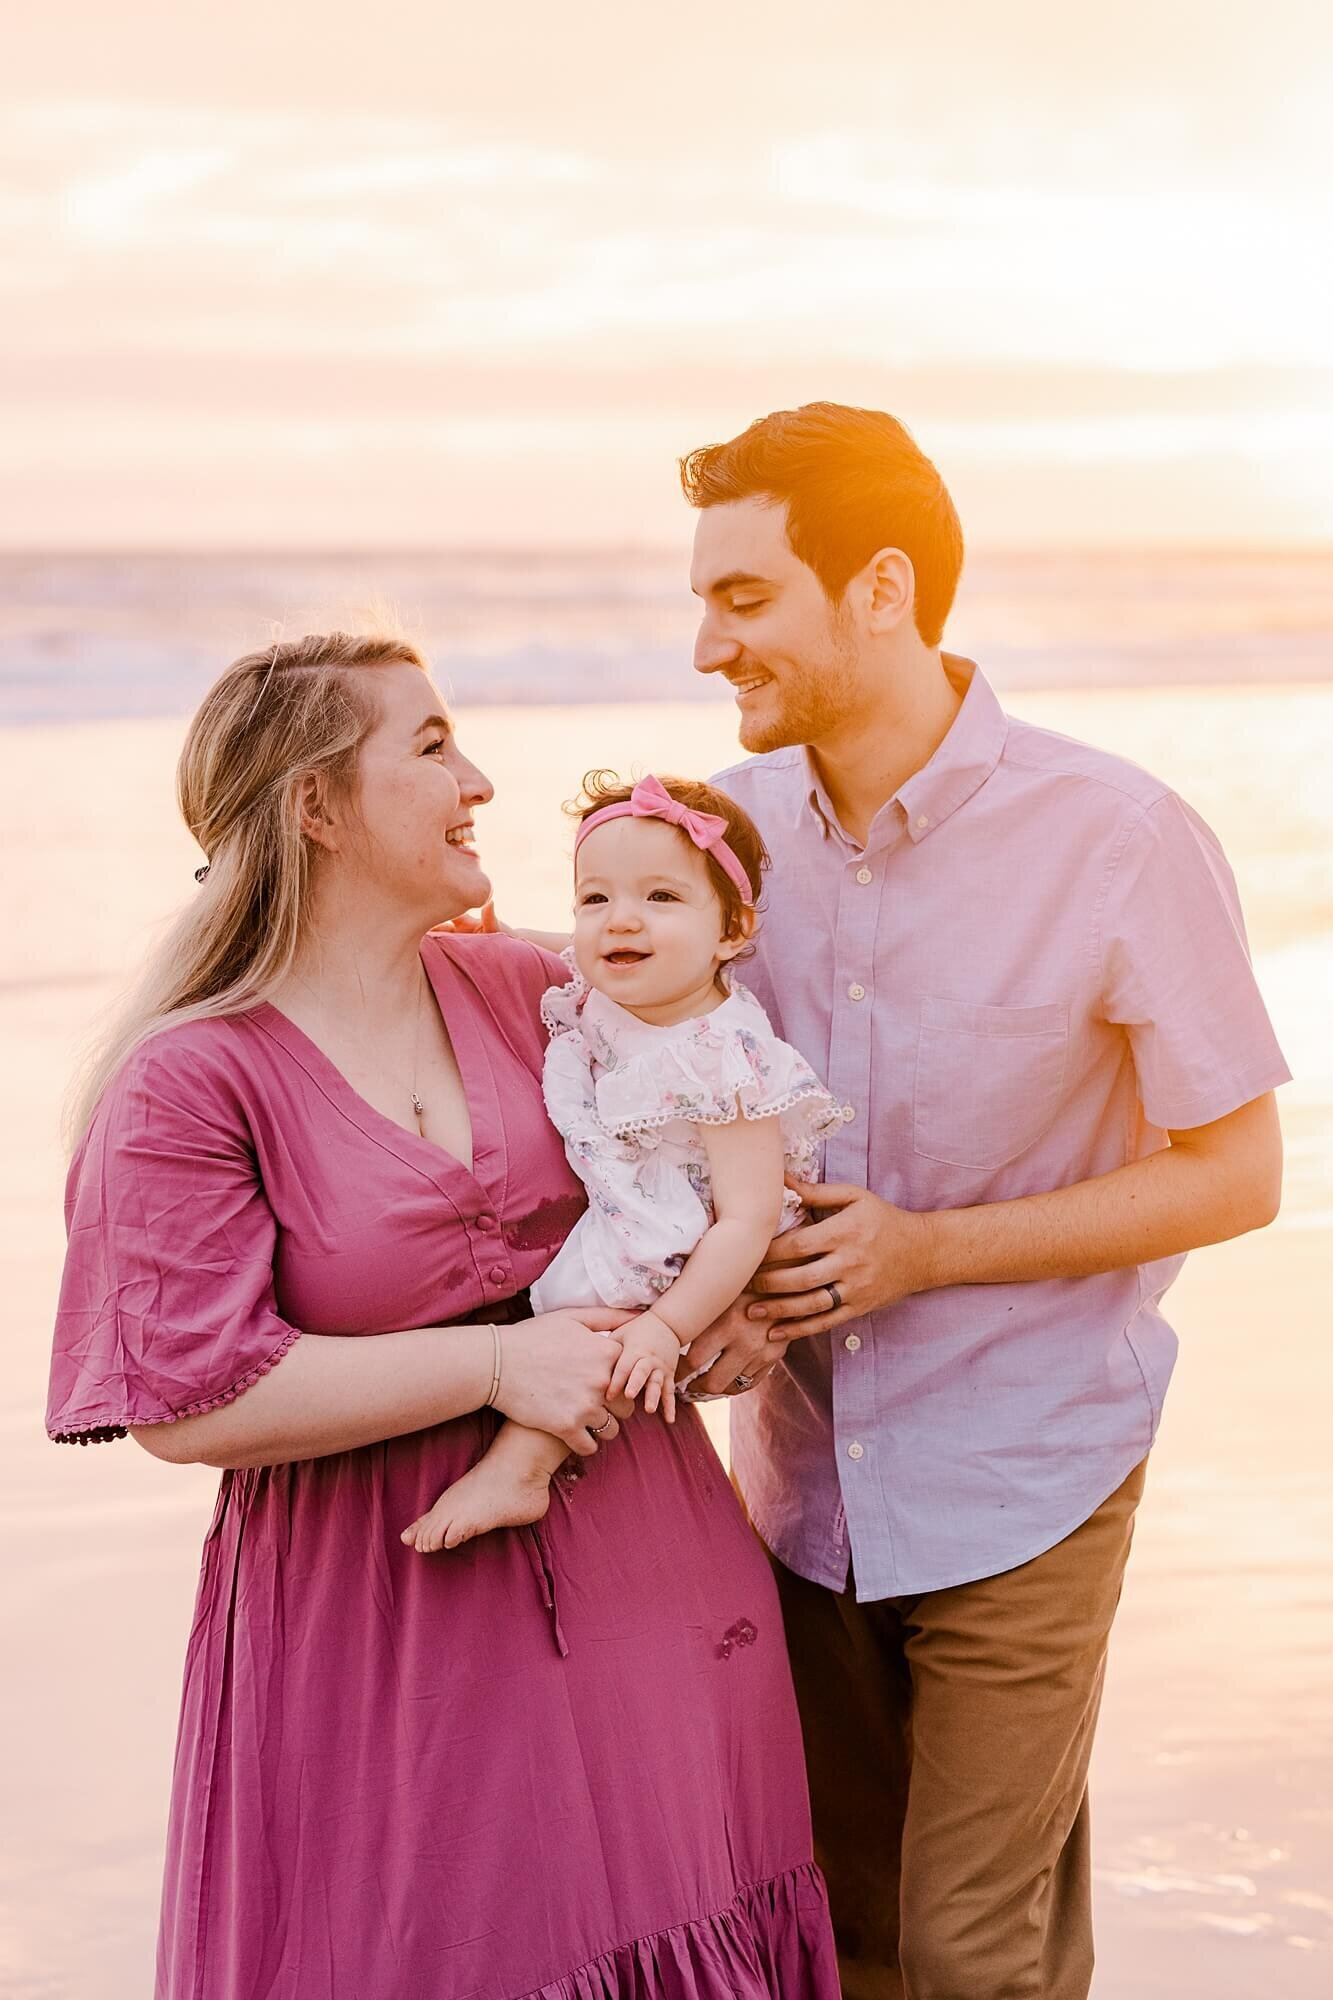 winterhaven-park-family-session-new-smyrna-beach-haleigh-nicole-photography_0015